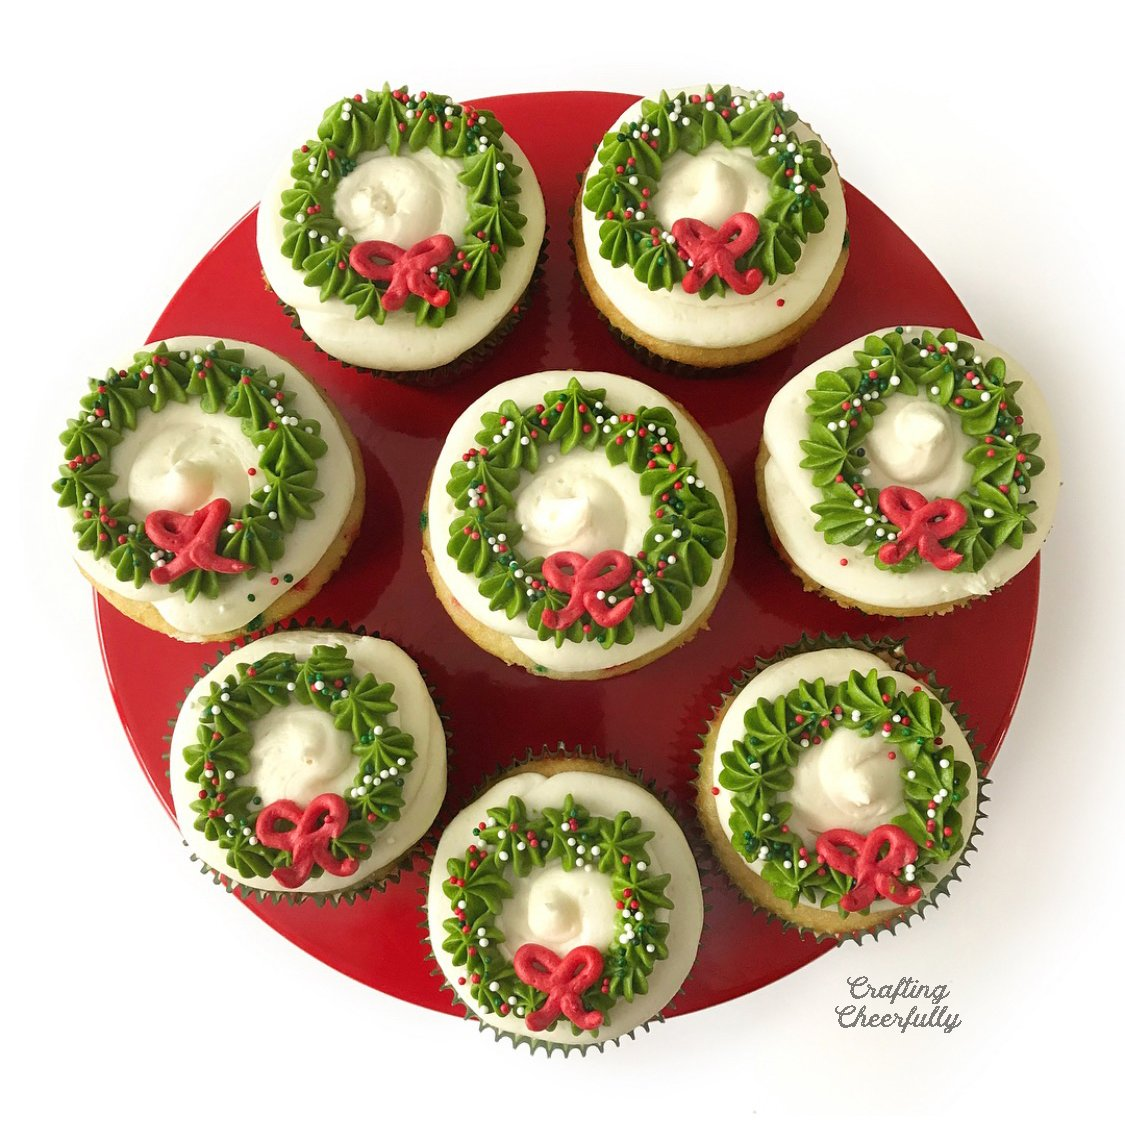 Cupcakes with frosting wreath designs on the top.